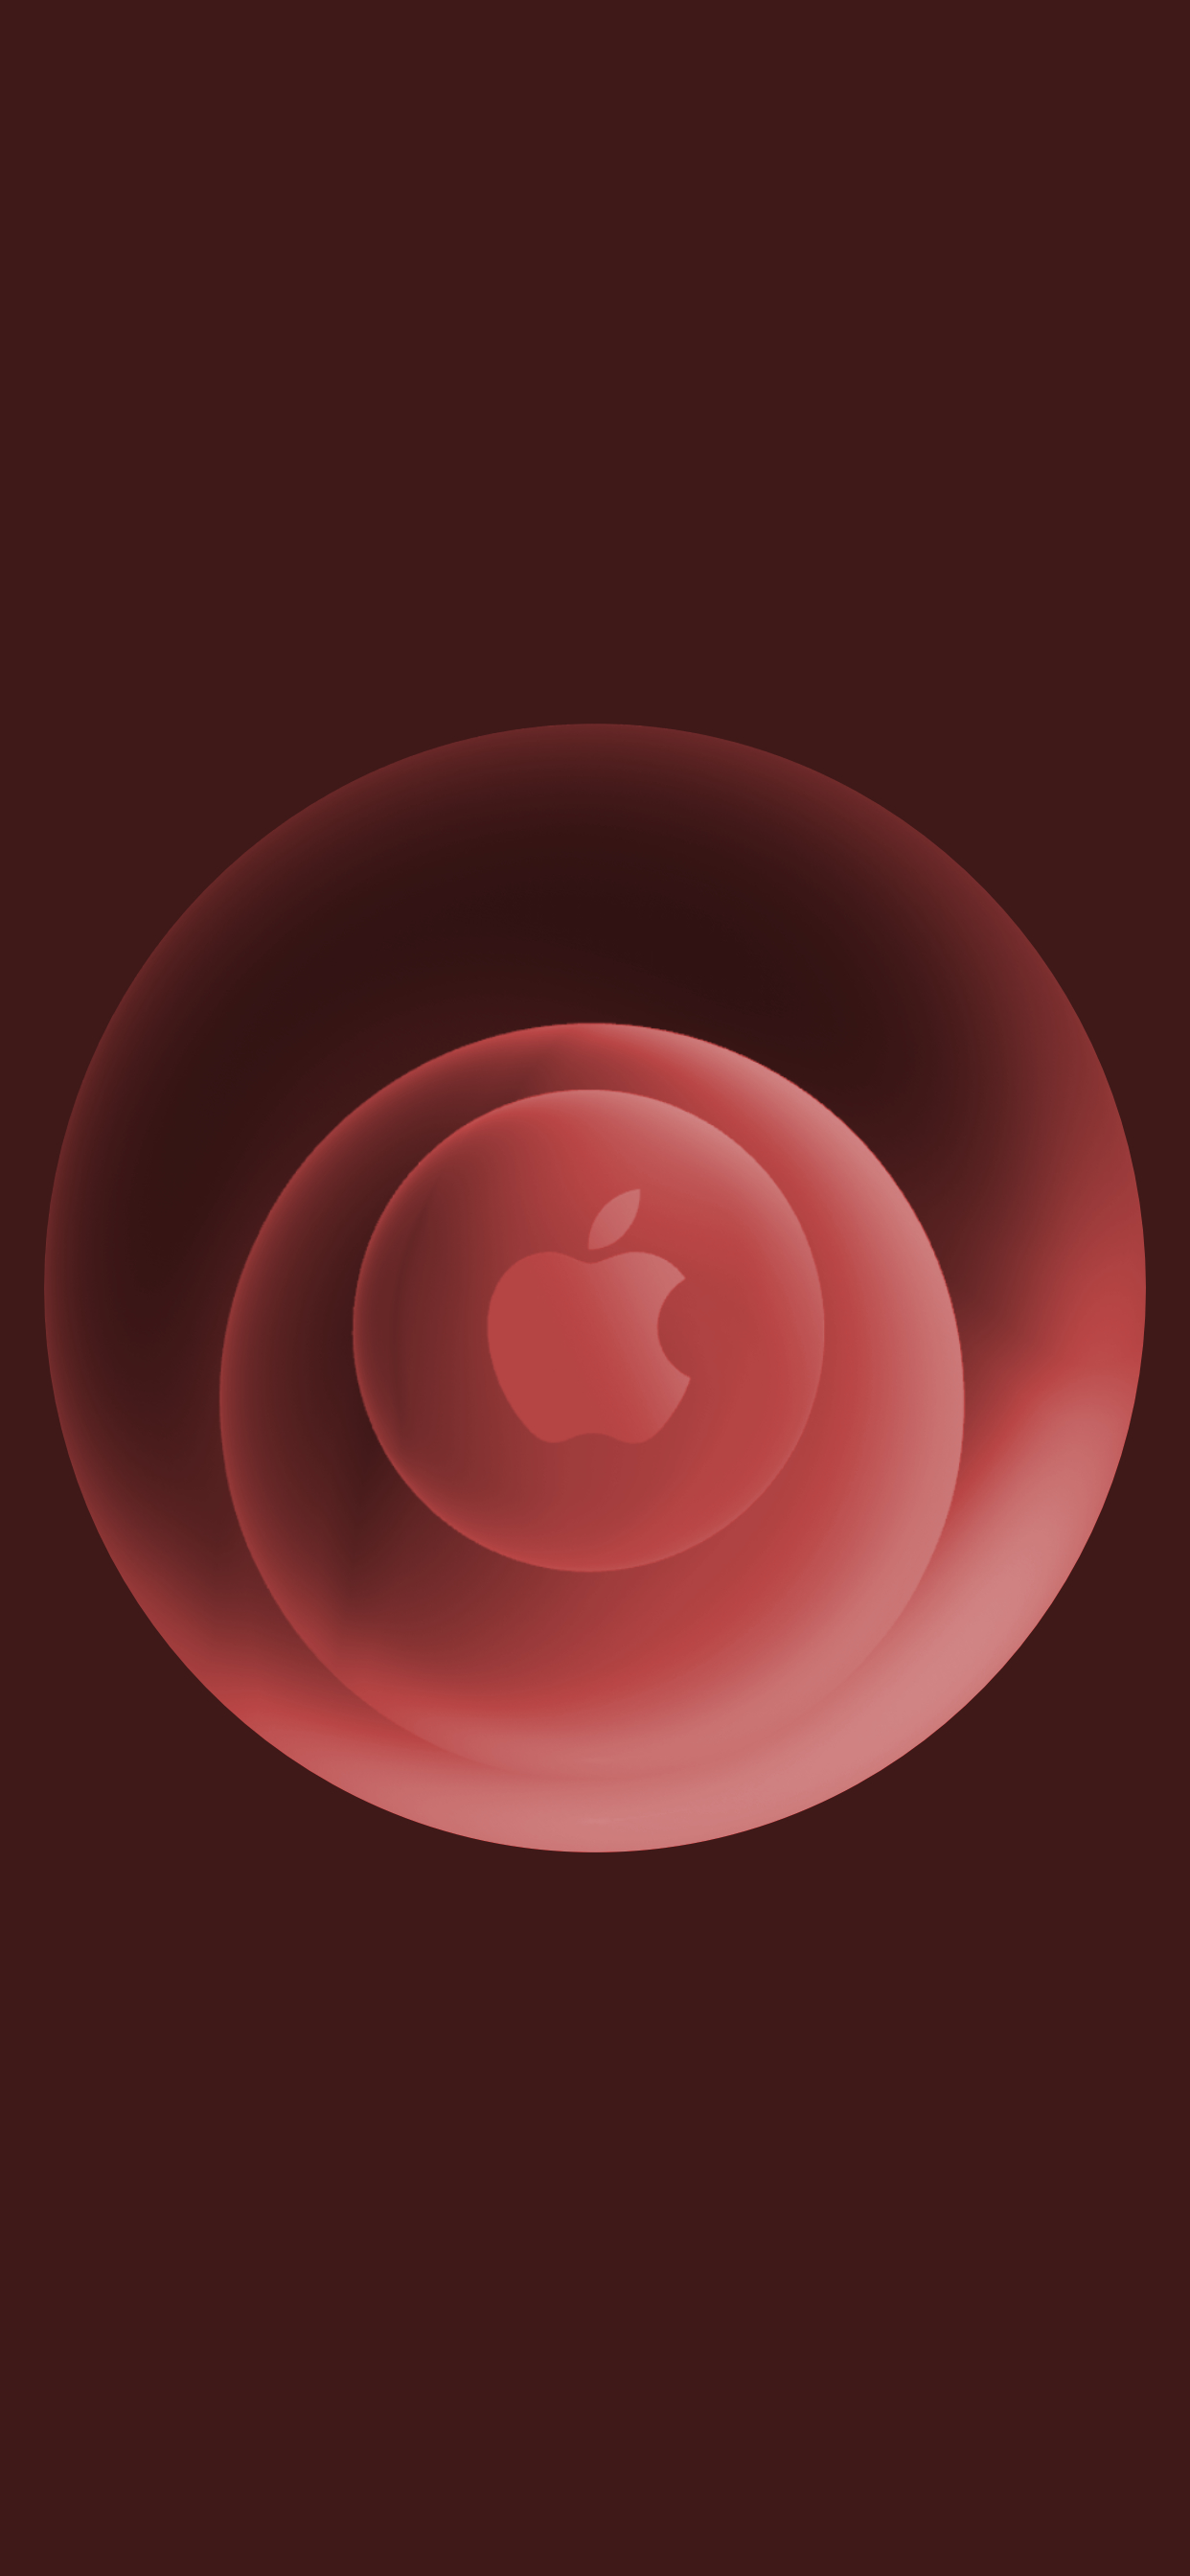 Hi Speed wallpapers Apple Event October 2020 iDownloadBlog iPhone 9techeleven Red